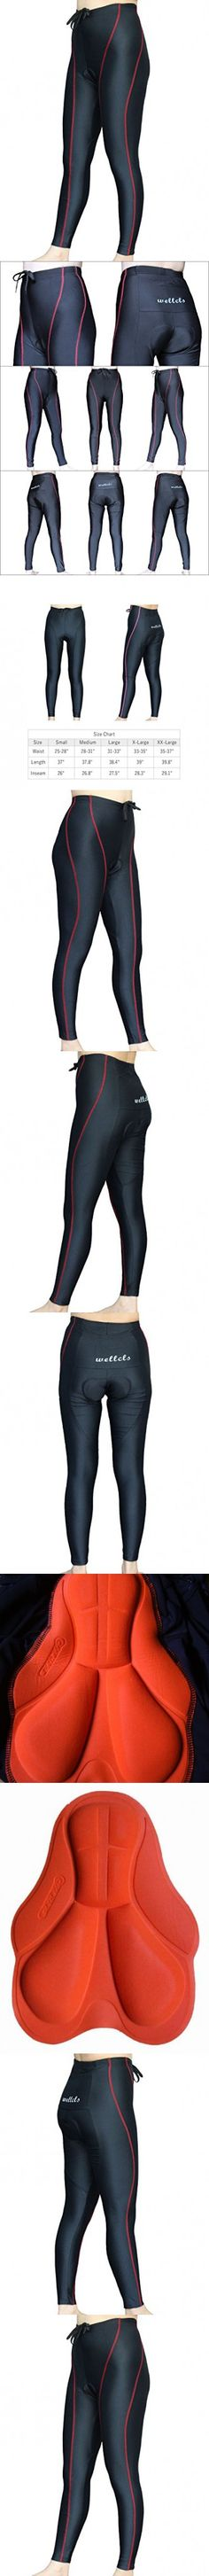 Wellcls Women's Cycling Long Pants 3D Padded Bike Bicycle Wear (Black/Red, XX-Large)